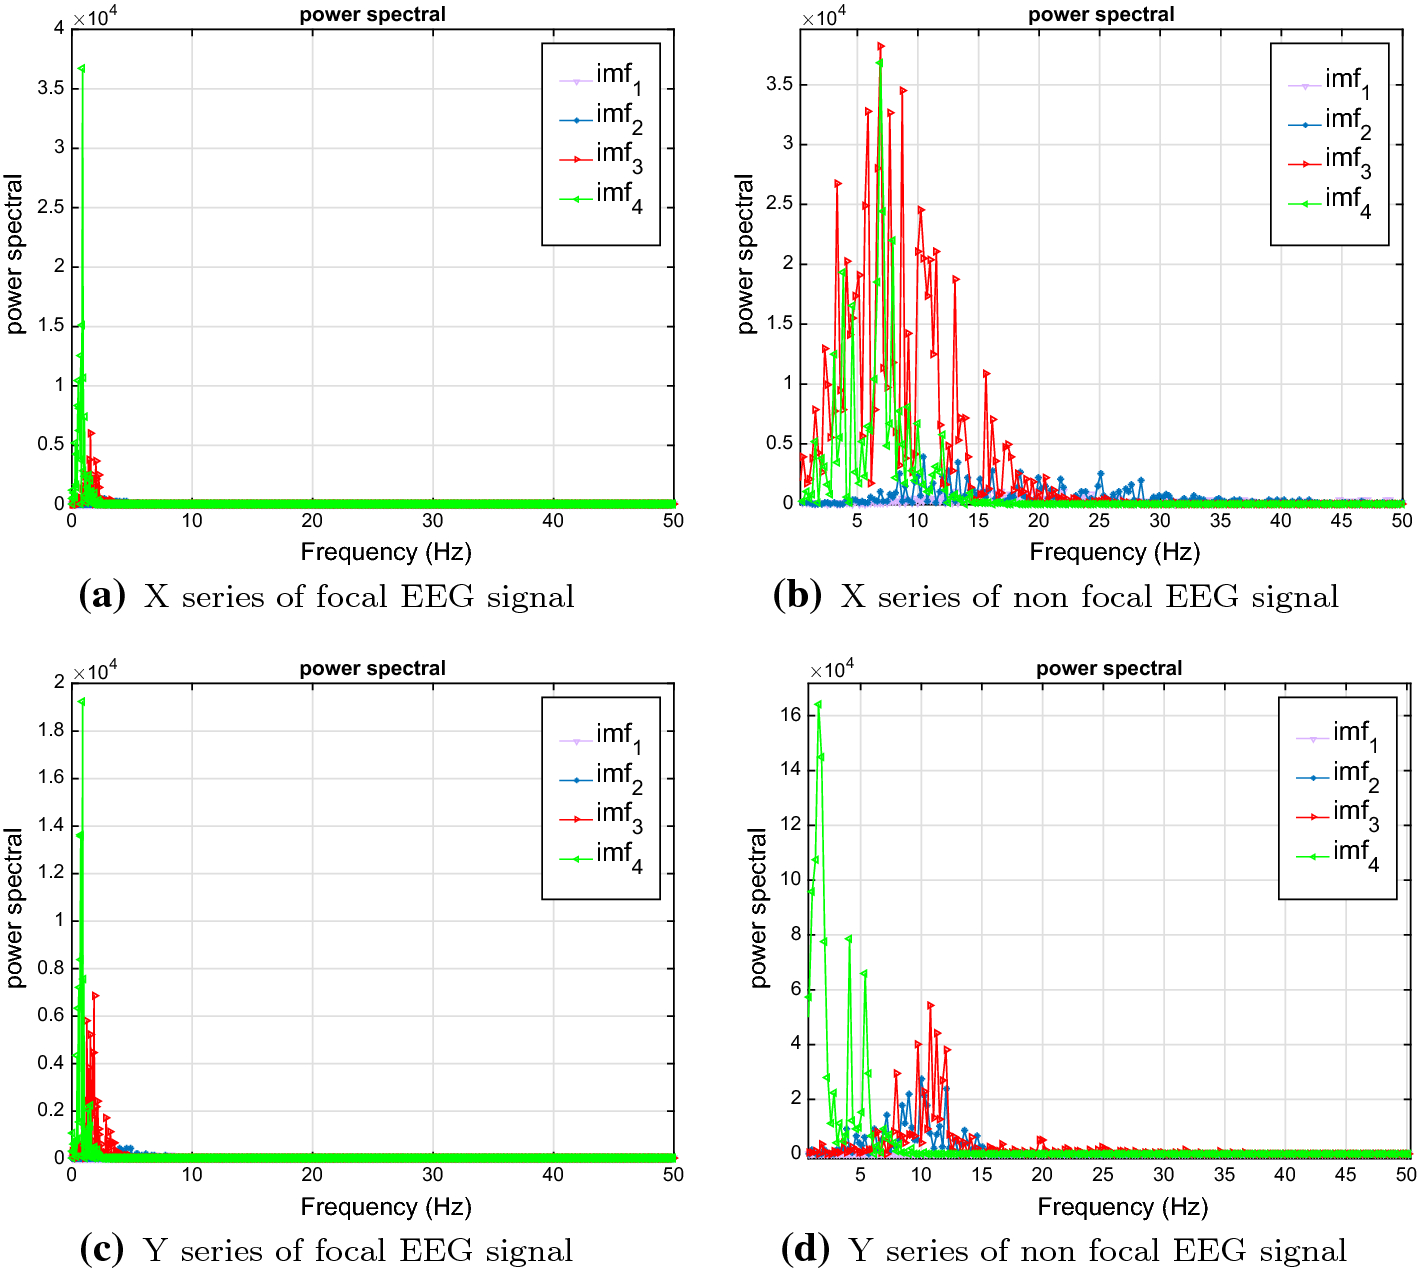 Classification of focal and non focal EEG signals using